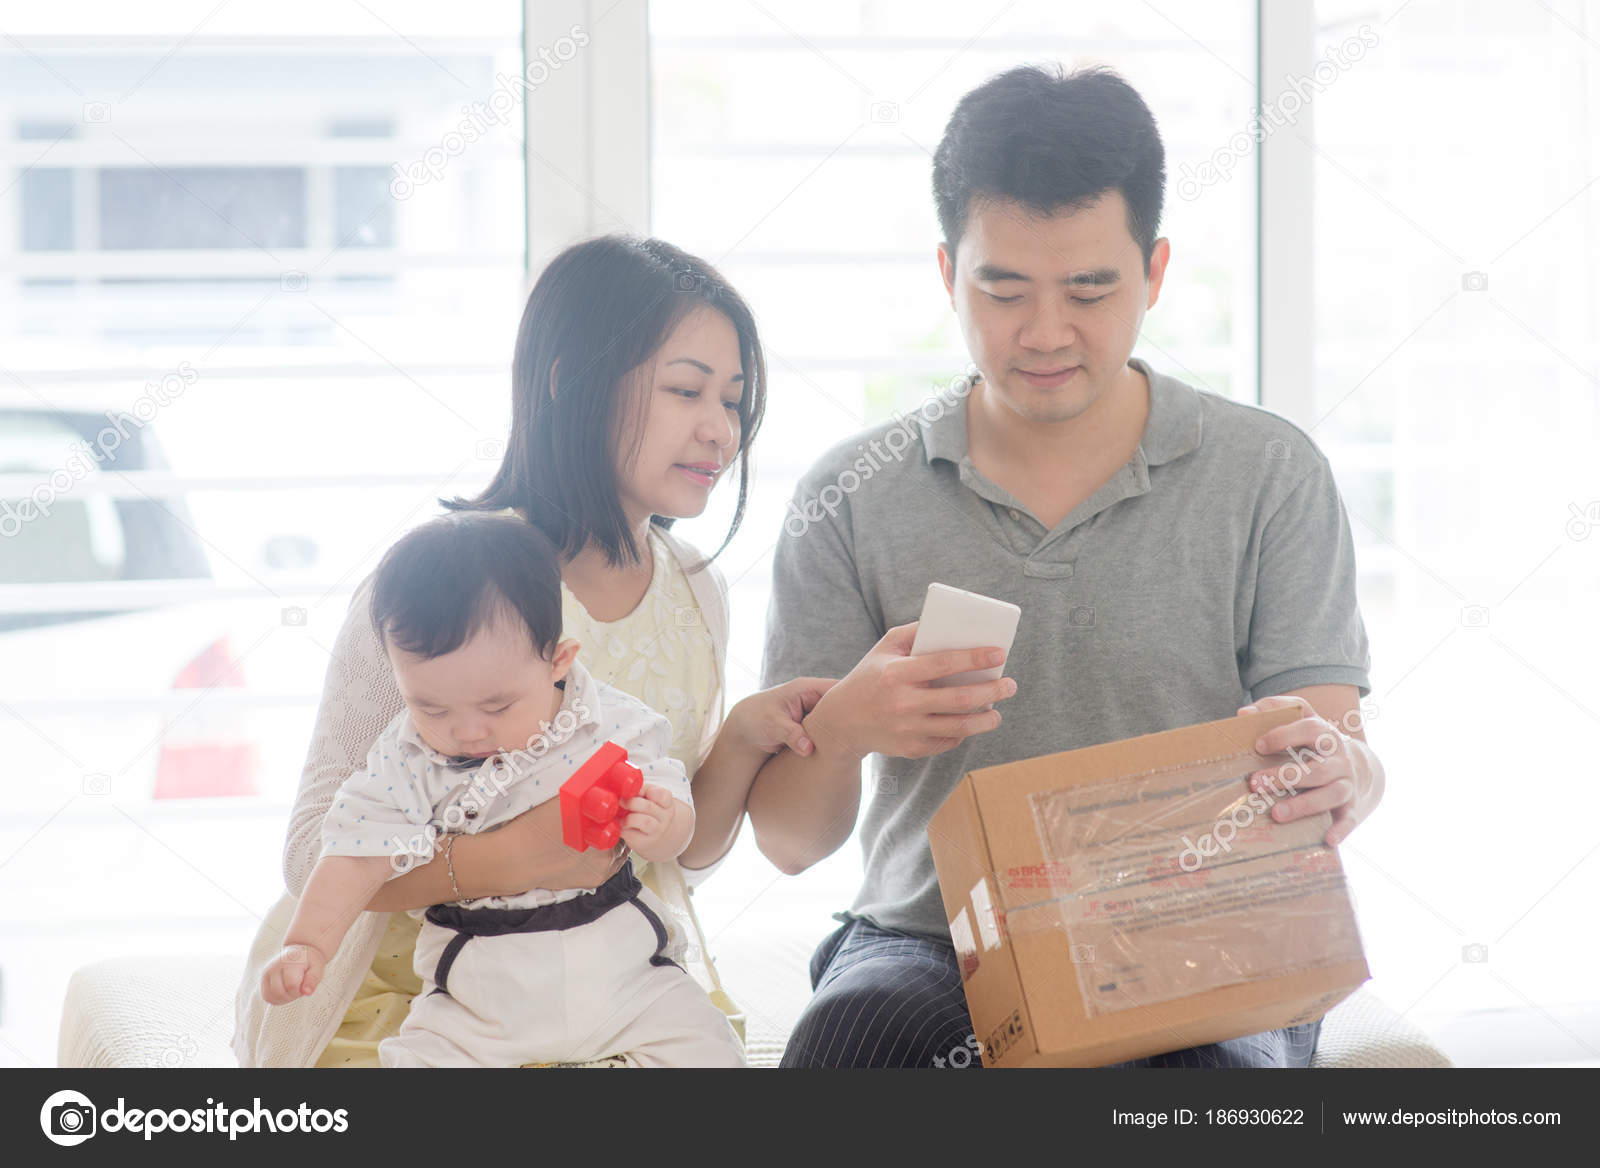 Code qr analyse chinois adulte photographie szefei 186930622 code qr analyse chinois adulte photo altavistaventures Choice Image